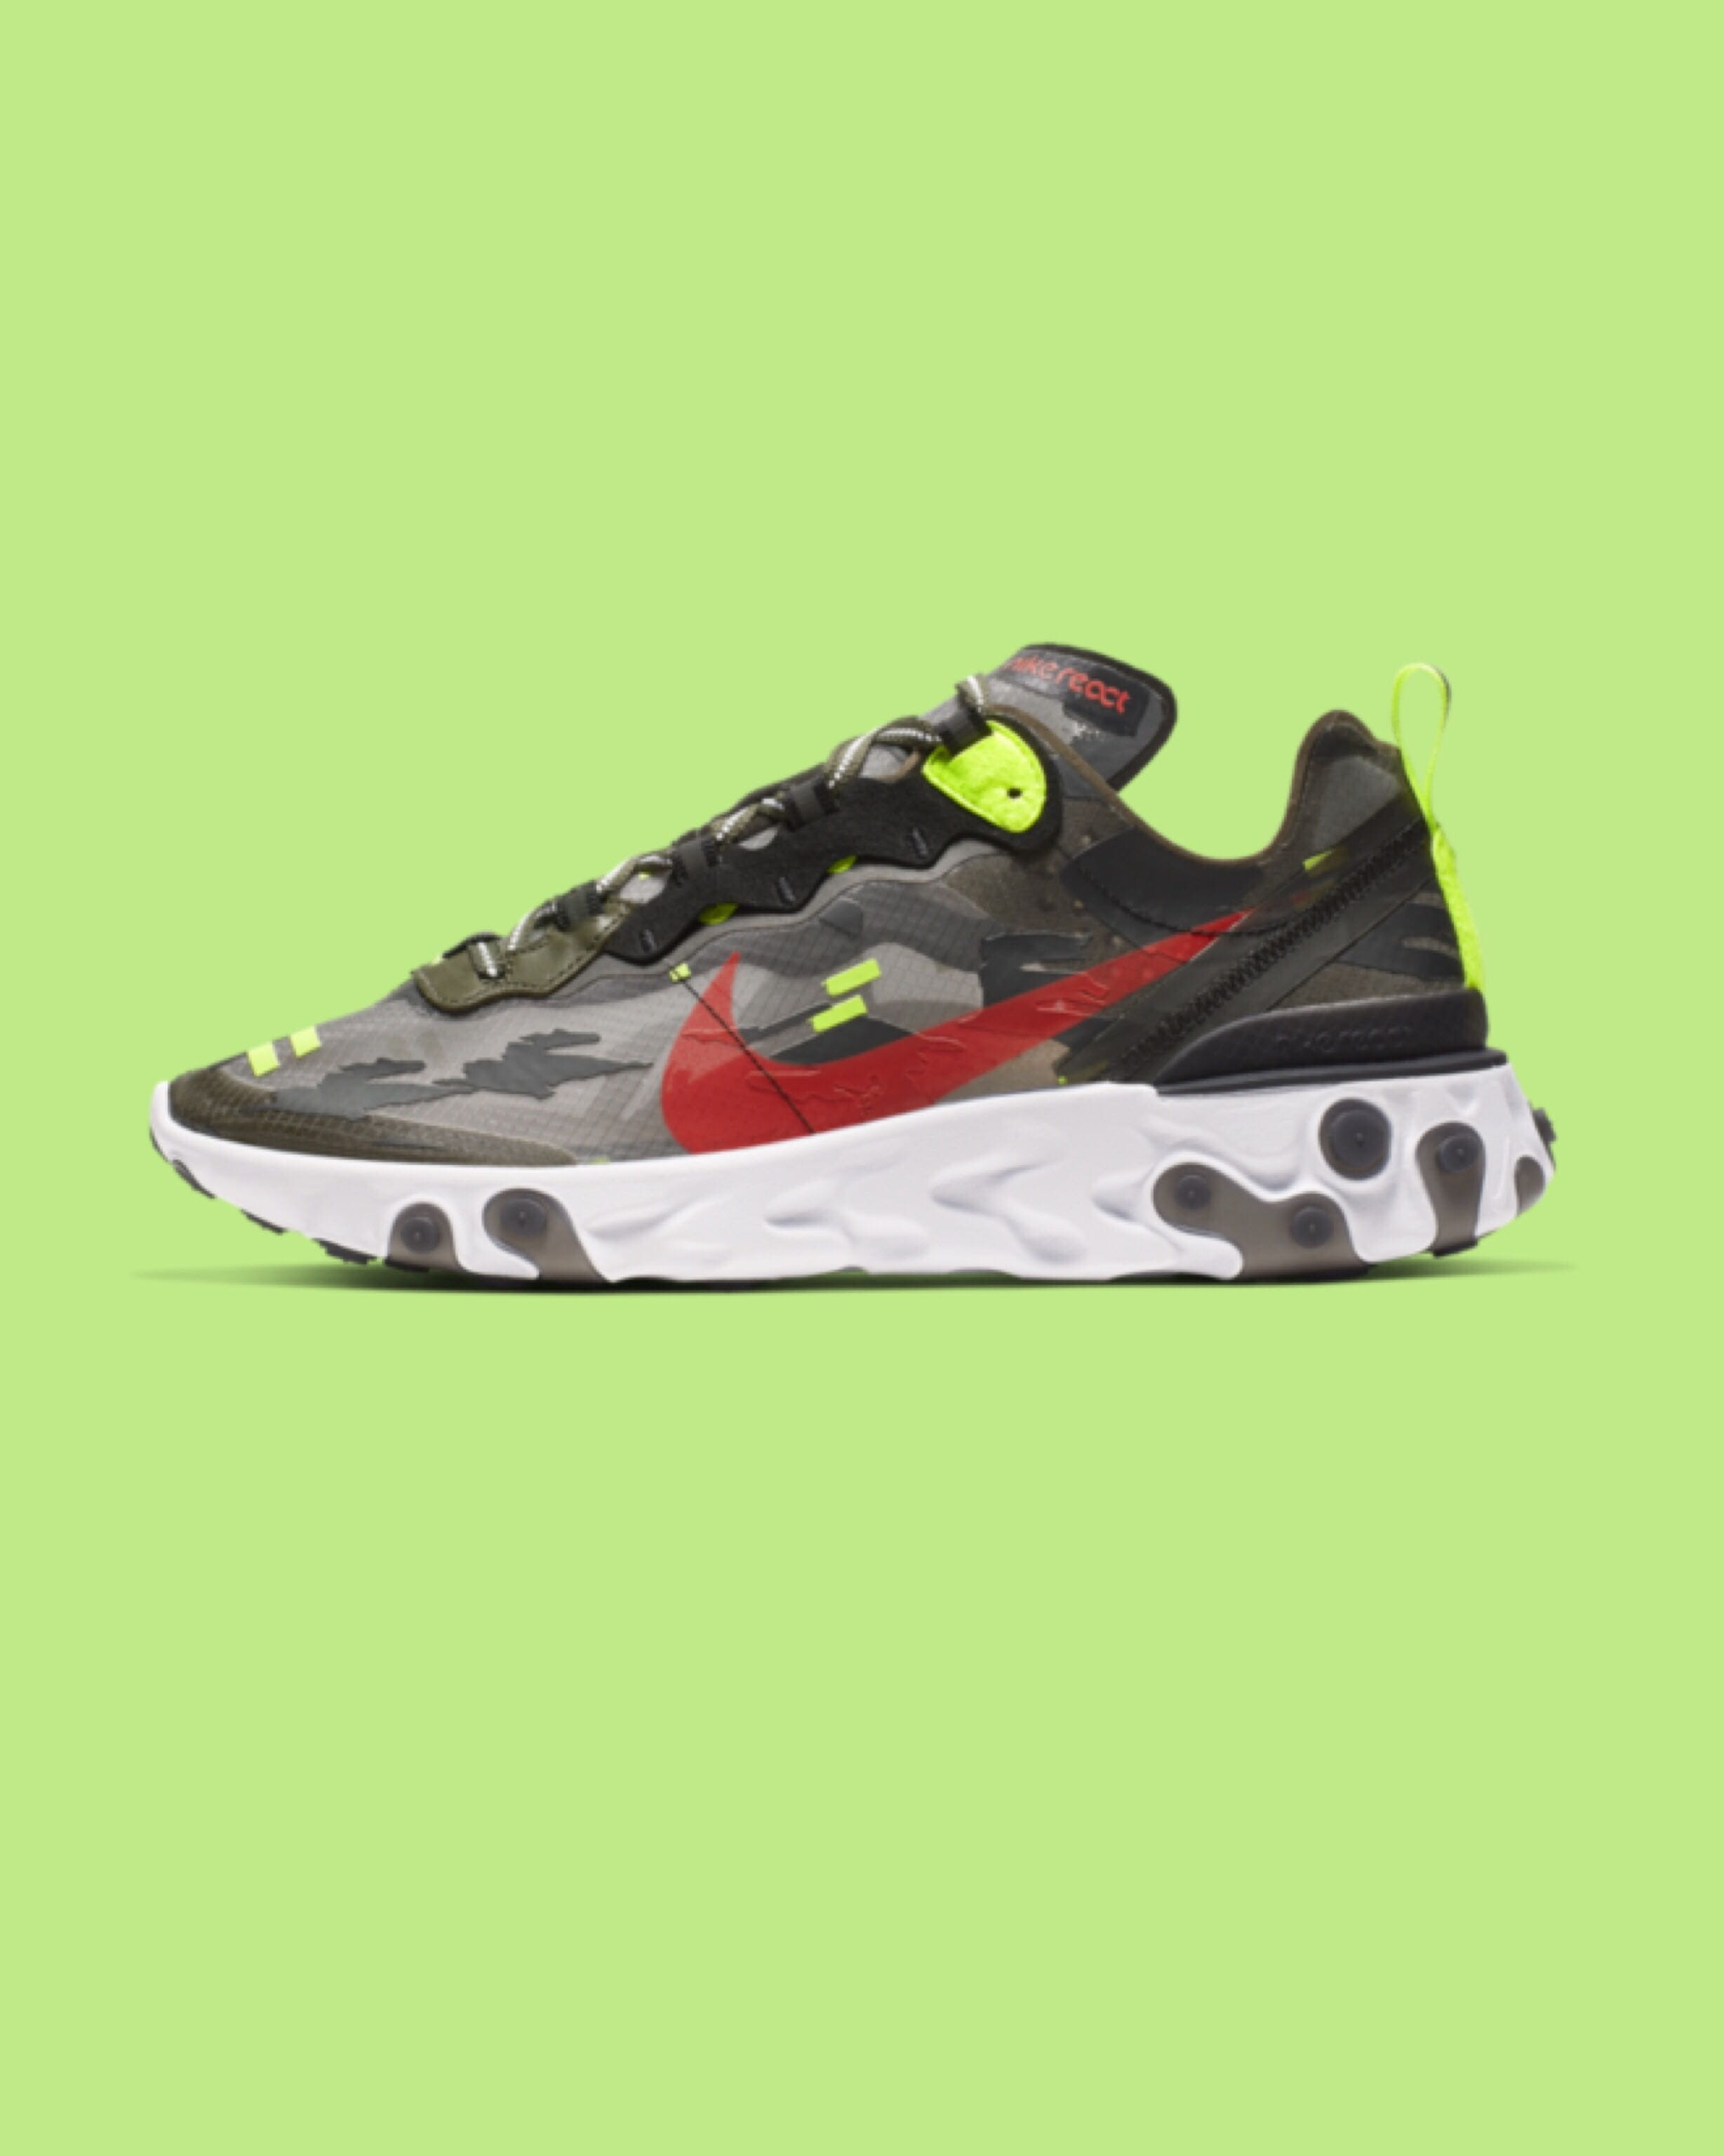 nike-react-element-87-CJ4988-200-01